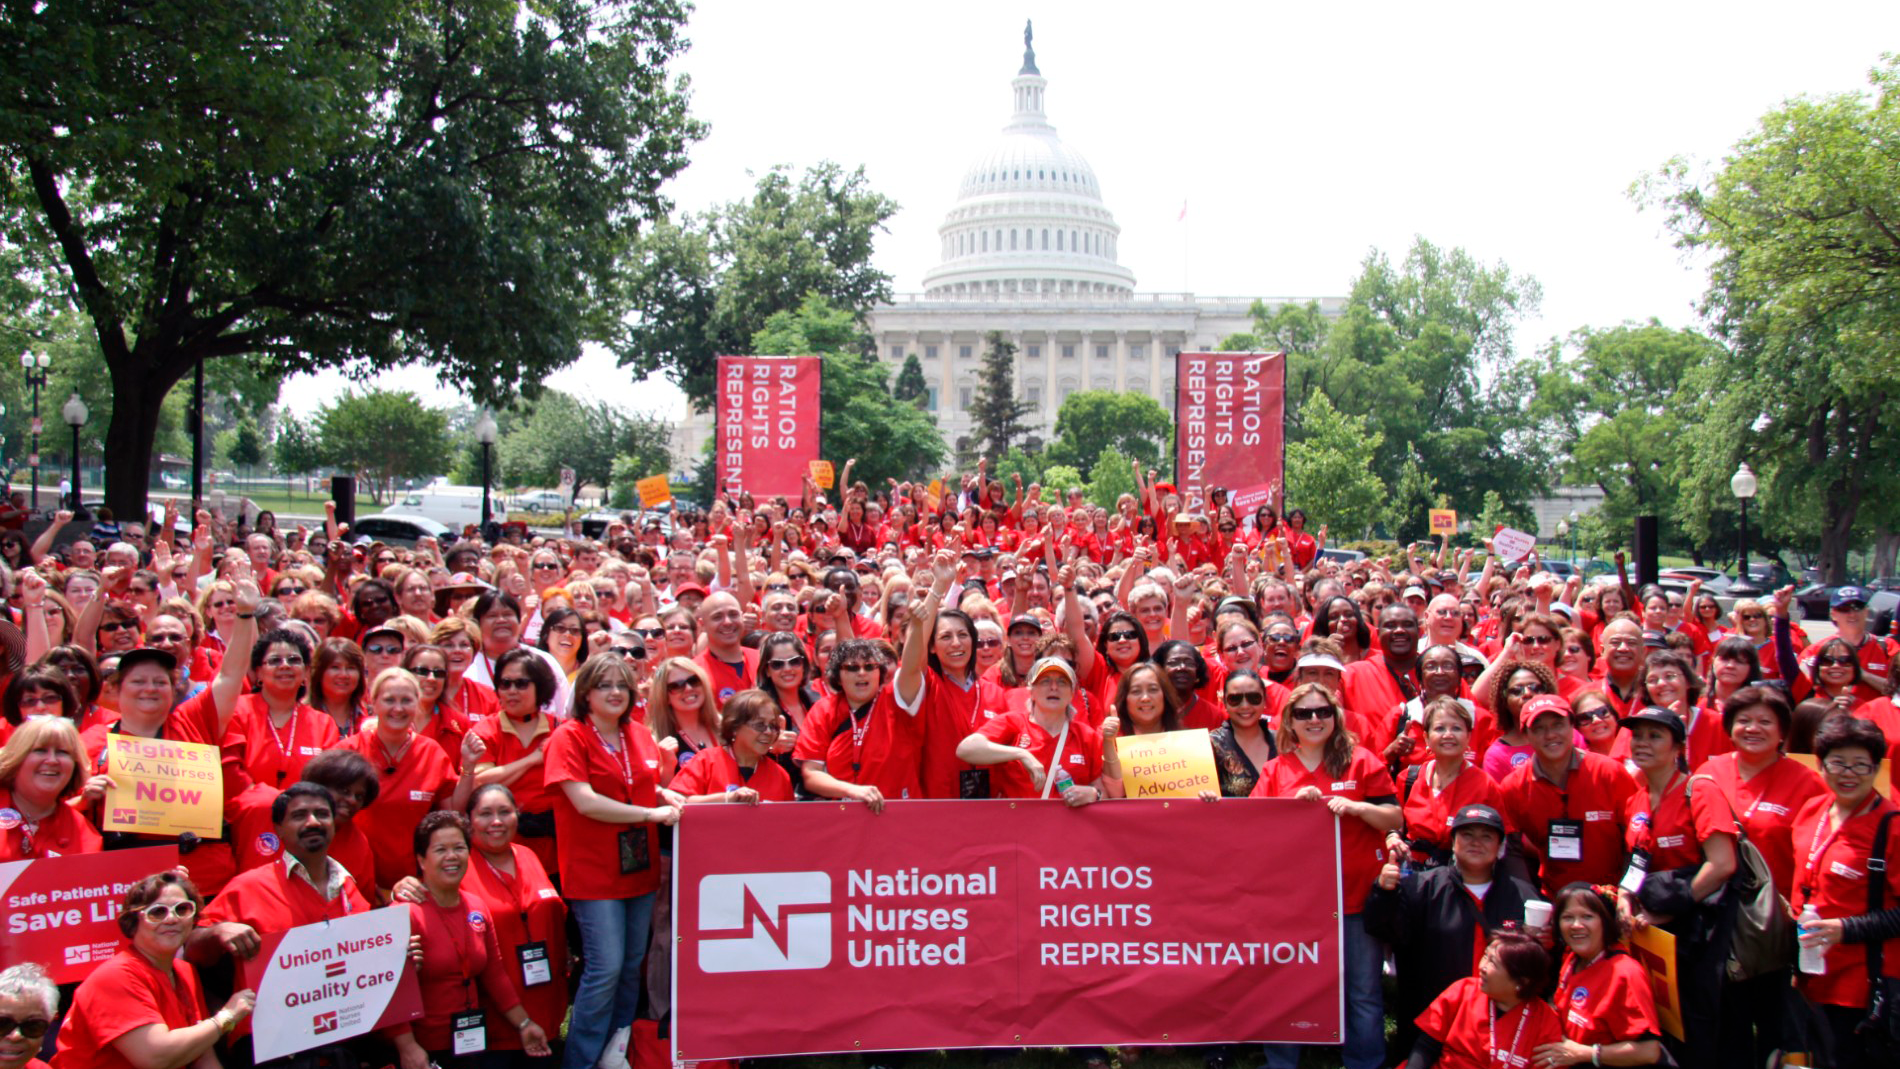 """Large crowd of nurses hold sign """"Ratios, Rights, Representation"""" at state capitol building."""